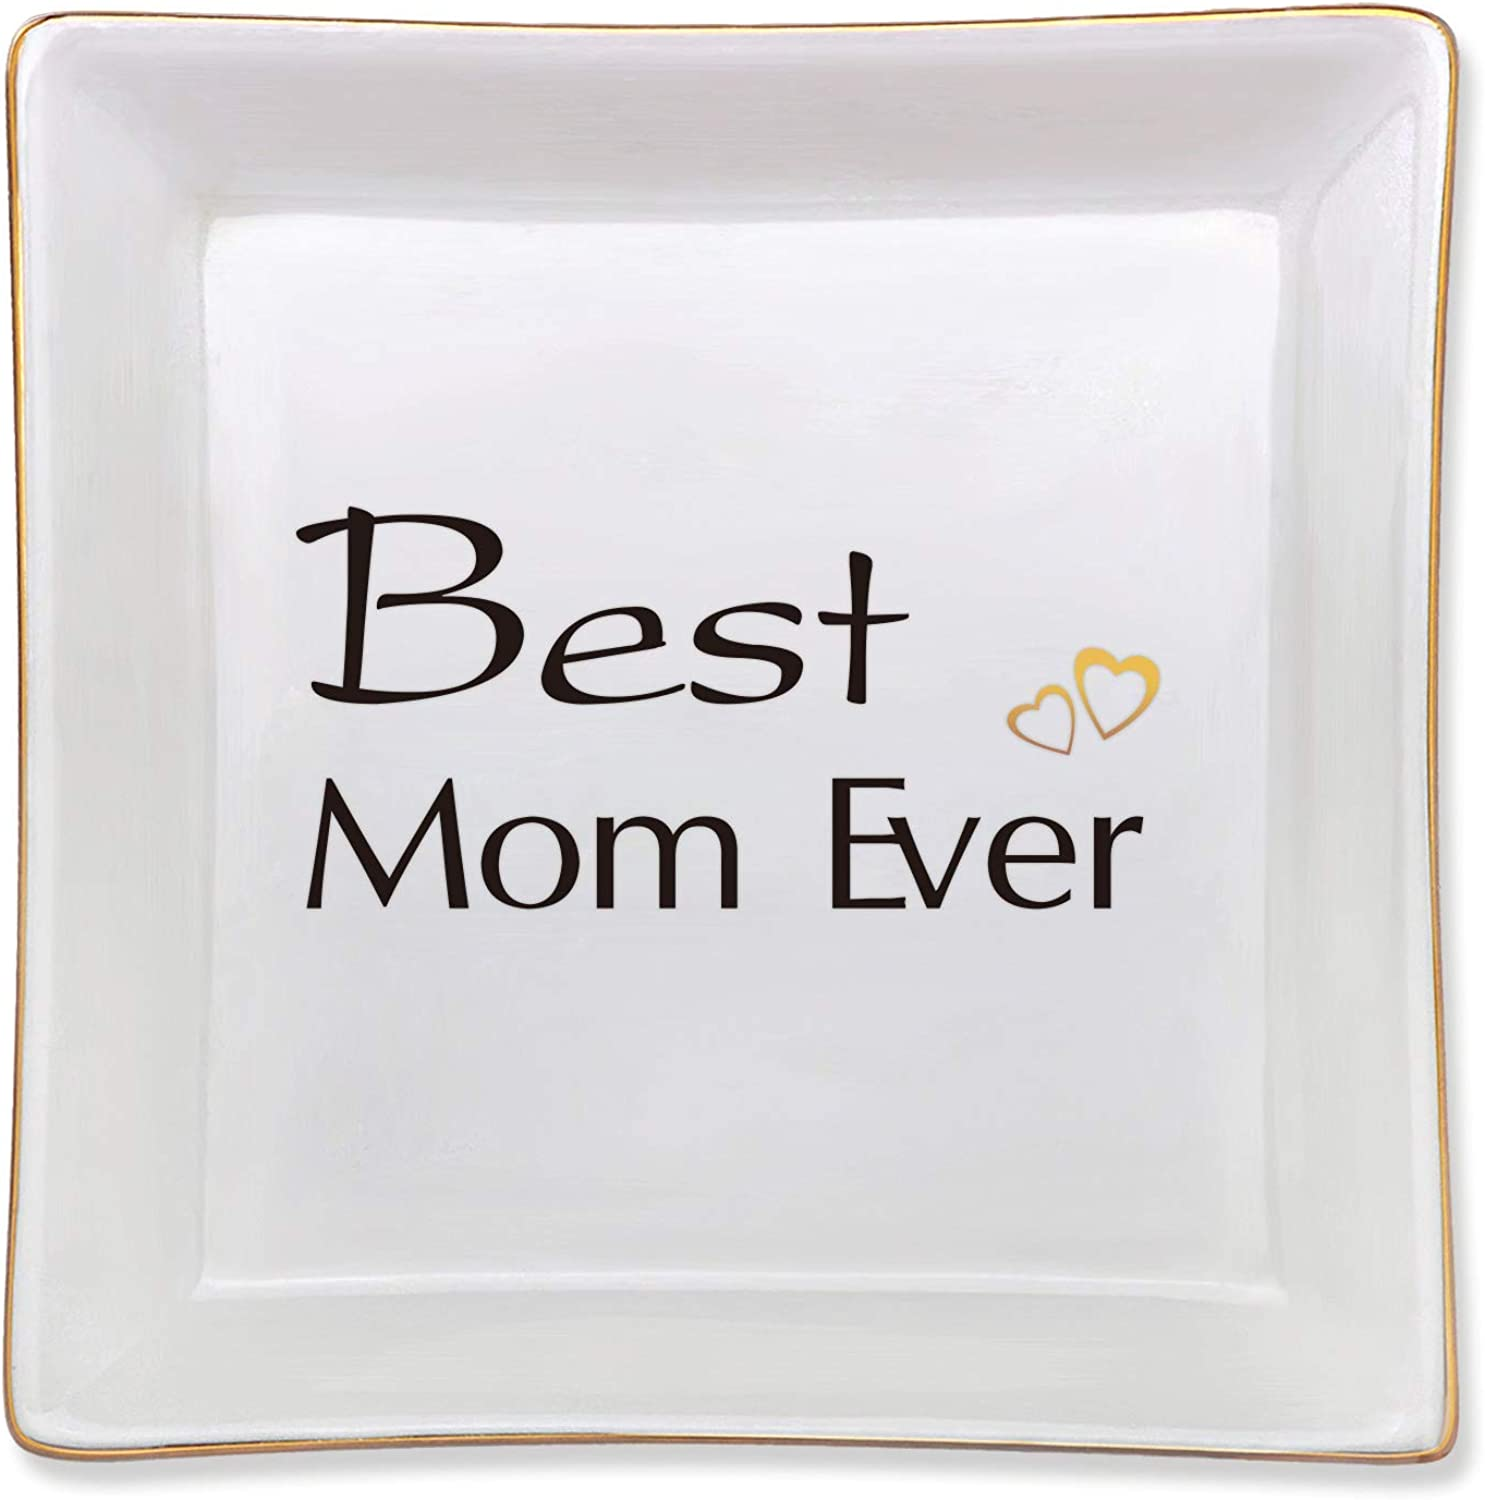 Best Mom Ever Ceramic Jewelry Tray Mom Birthday Gifts From Daughter Birthday Gifts For Mom Mother Of The Bride Gifts Mom Gift From Daughter Thanksgiving Gifts Home Decorative Trinket Plate Amazon Ca Jewelry